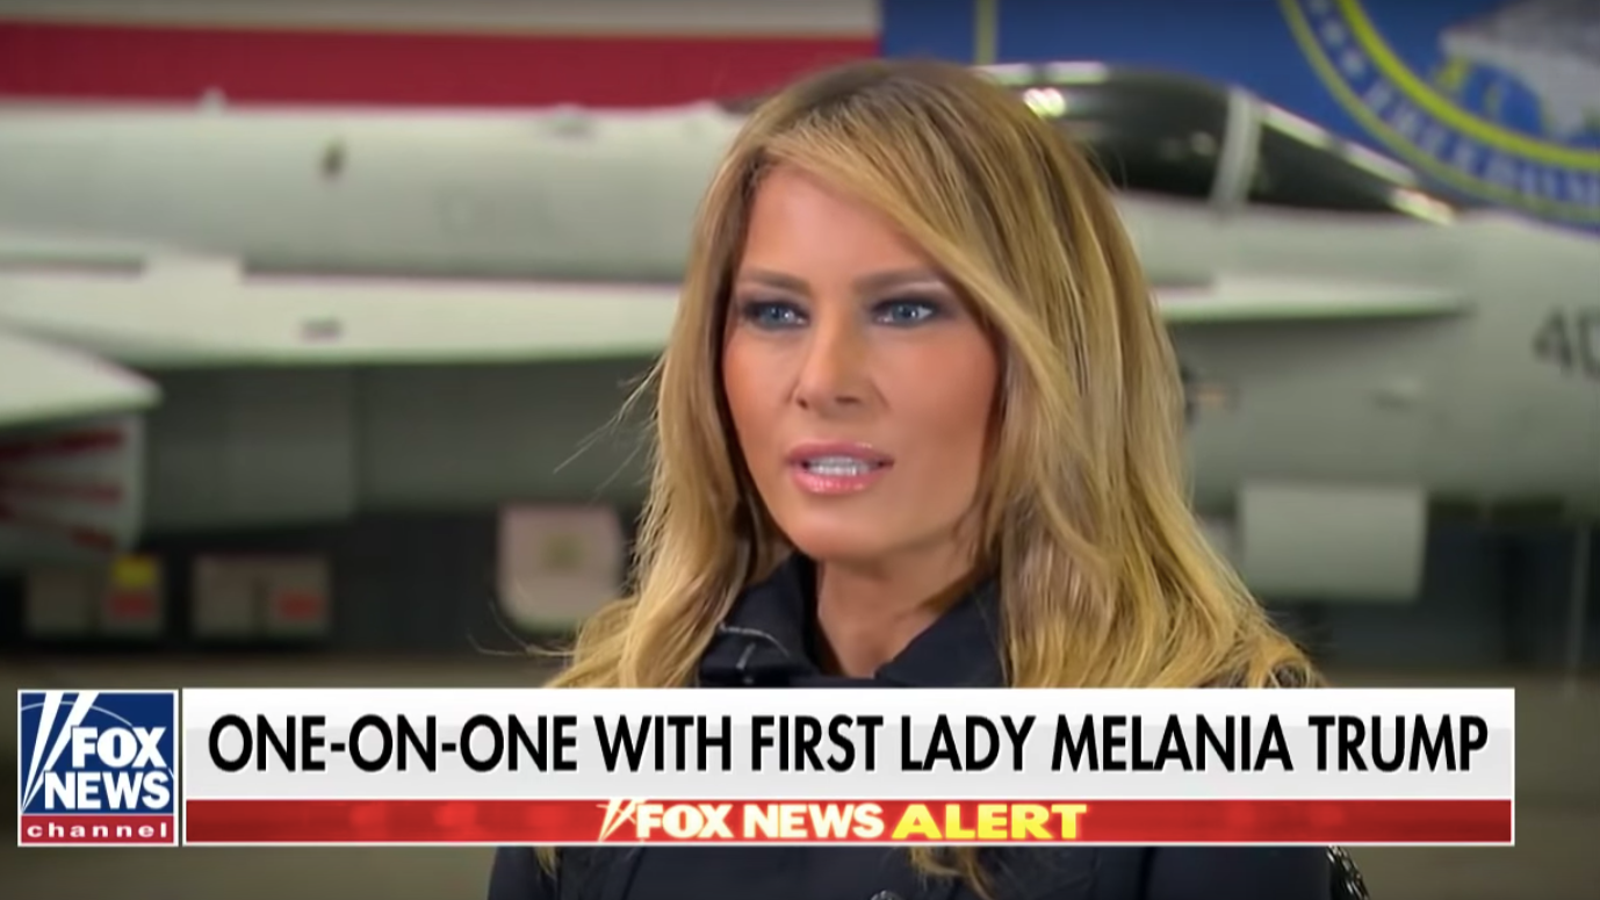 And Here We Have Melania Trump Reminiscing About Falling in Love With Donald Trump